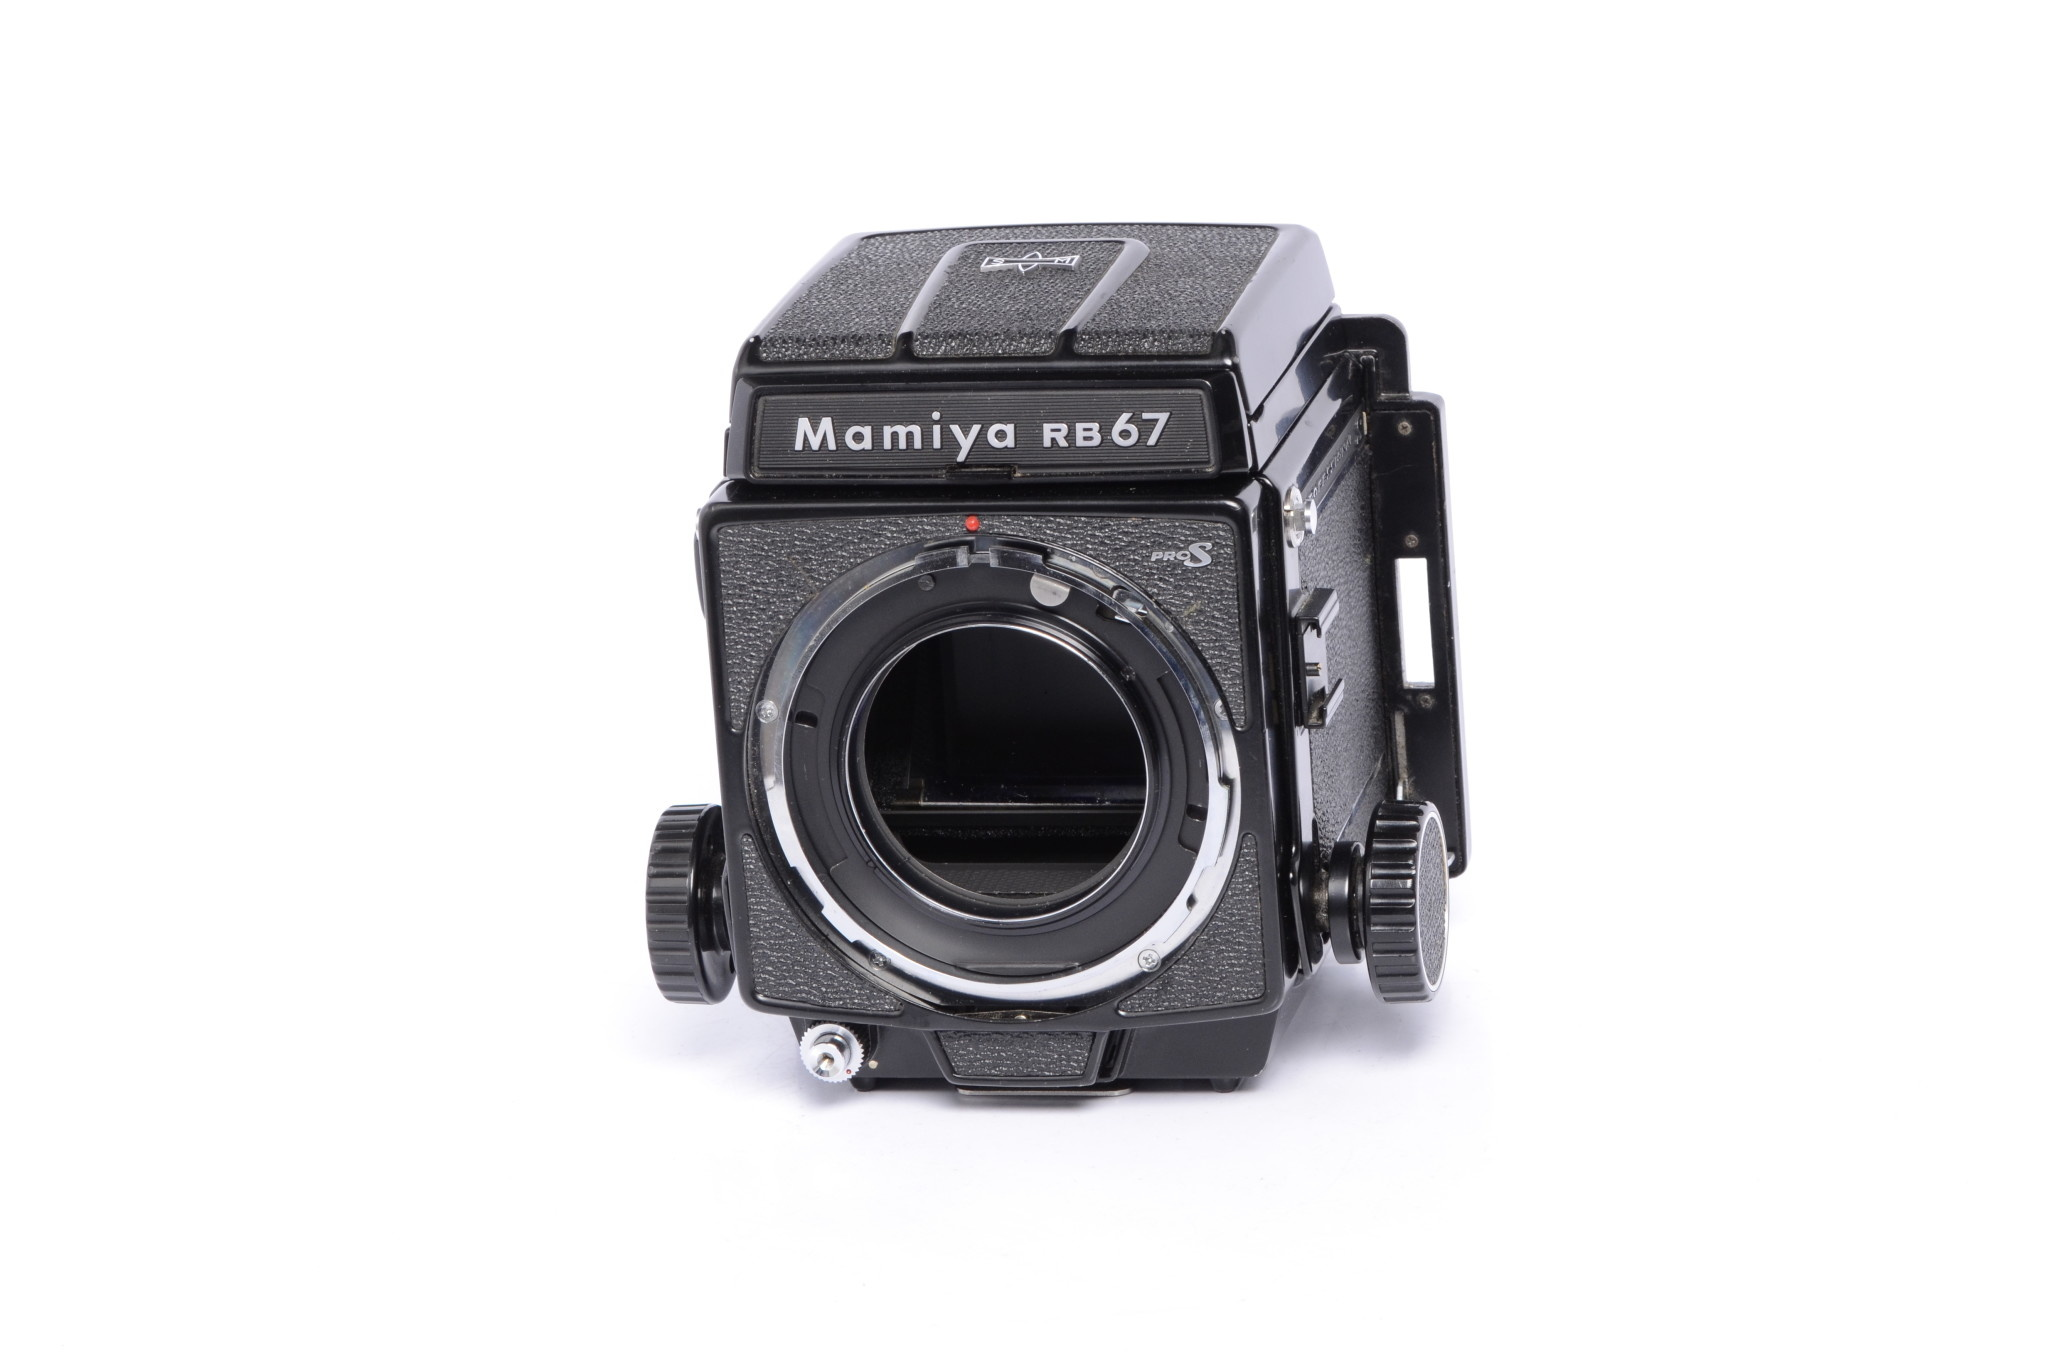 Mamiya RB67 Pro S w/ WL Waist Level Finder and P Adapter